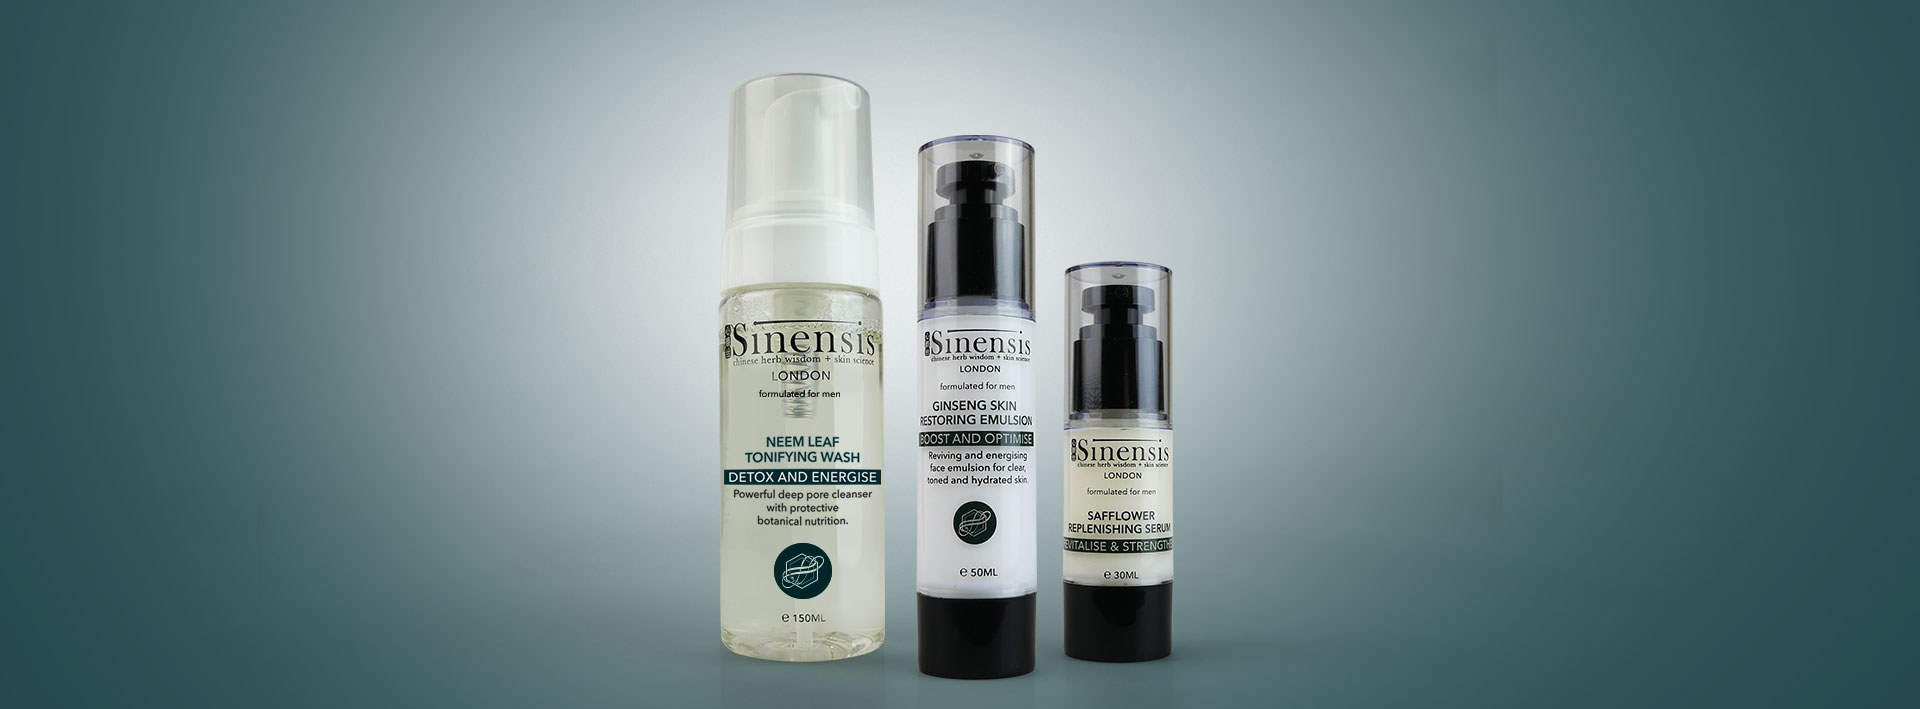 Anti Pollution skincare without any toxic chemicals